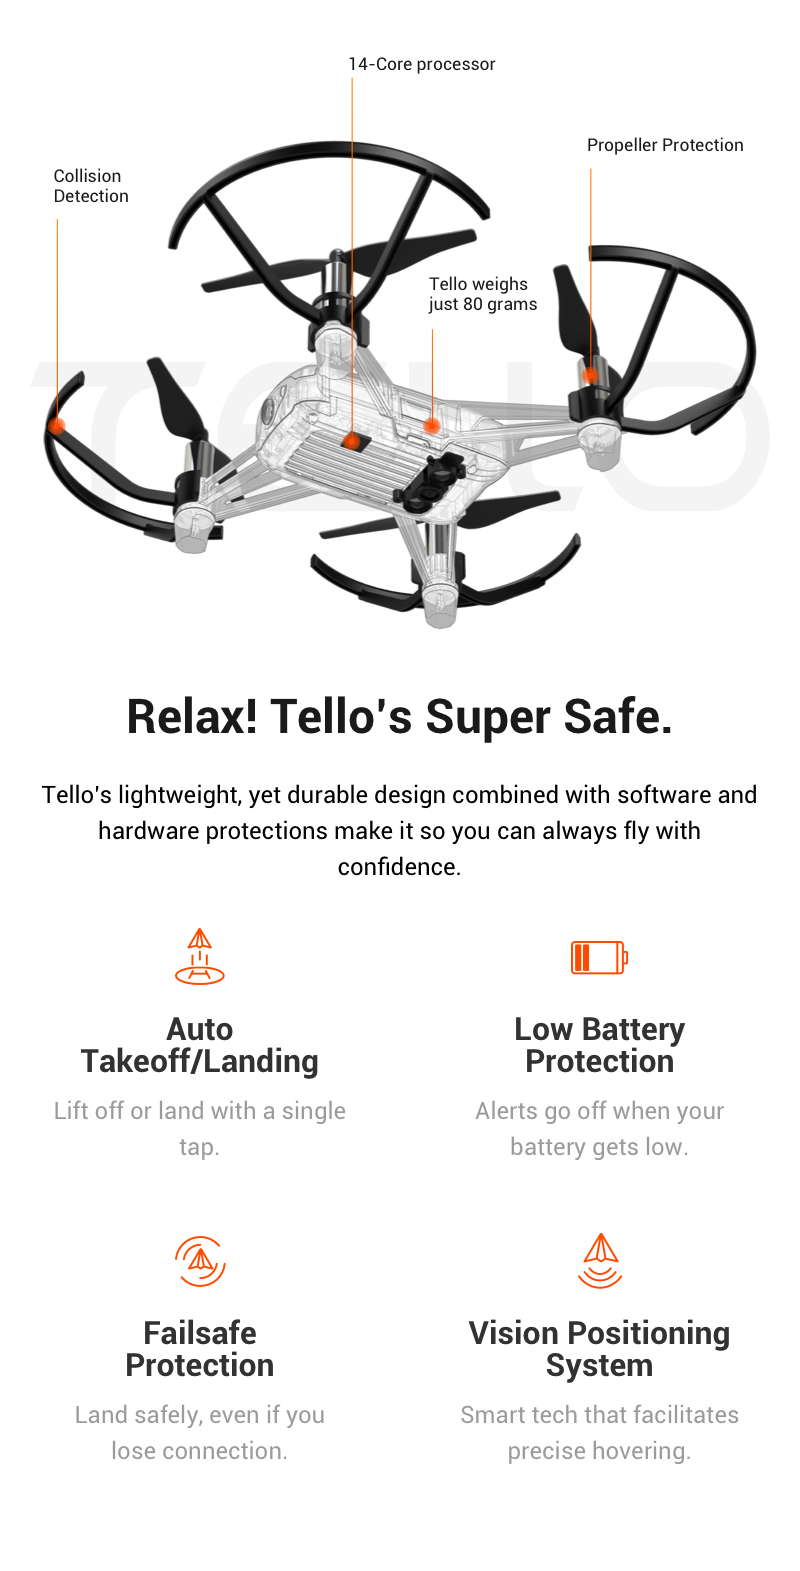 quadcopter camera stabilization with Dji Tello Quadcopter on Dromida Kodo Hd Camera Drone With Remote Controller together with Hubsan H501s X4 Review together with Drone Onyxstar Xena Observer Aerial Surveillance Uav moreover M2 D Mini Gyro Stabilized Eoir Uav Uas Multicopter Drone Flir Thermal Imaging Camera Turret Ball besides Dji Ryze Partner Up To Launch A 99 99 Drone Meet The Tello.